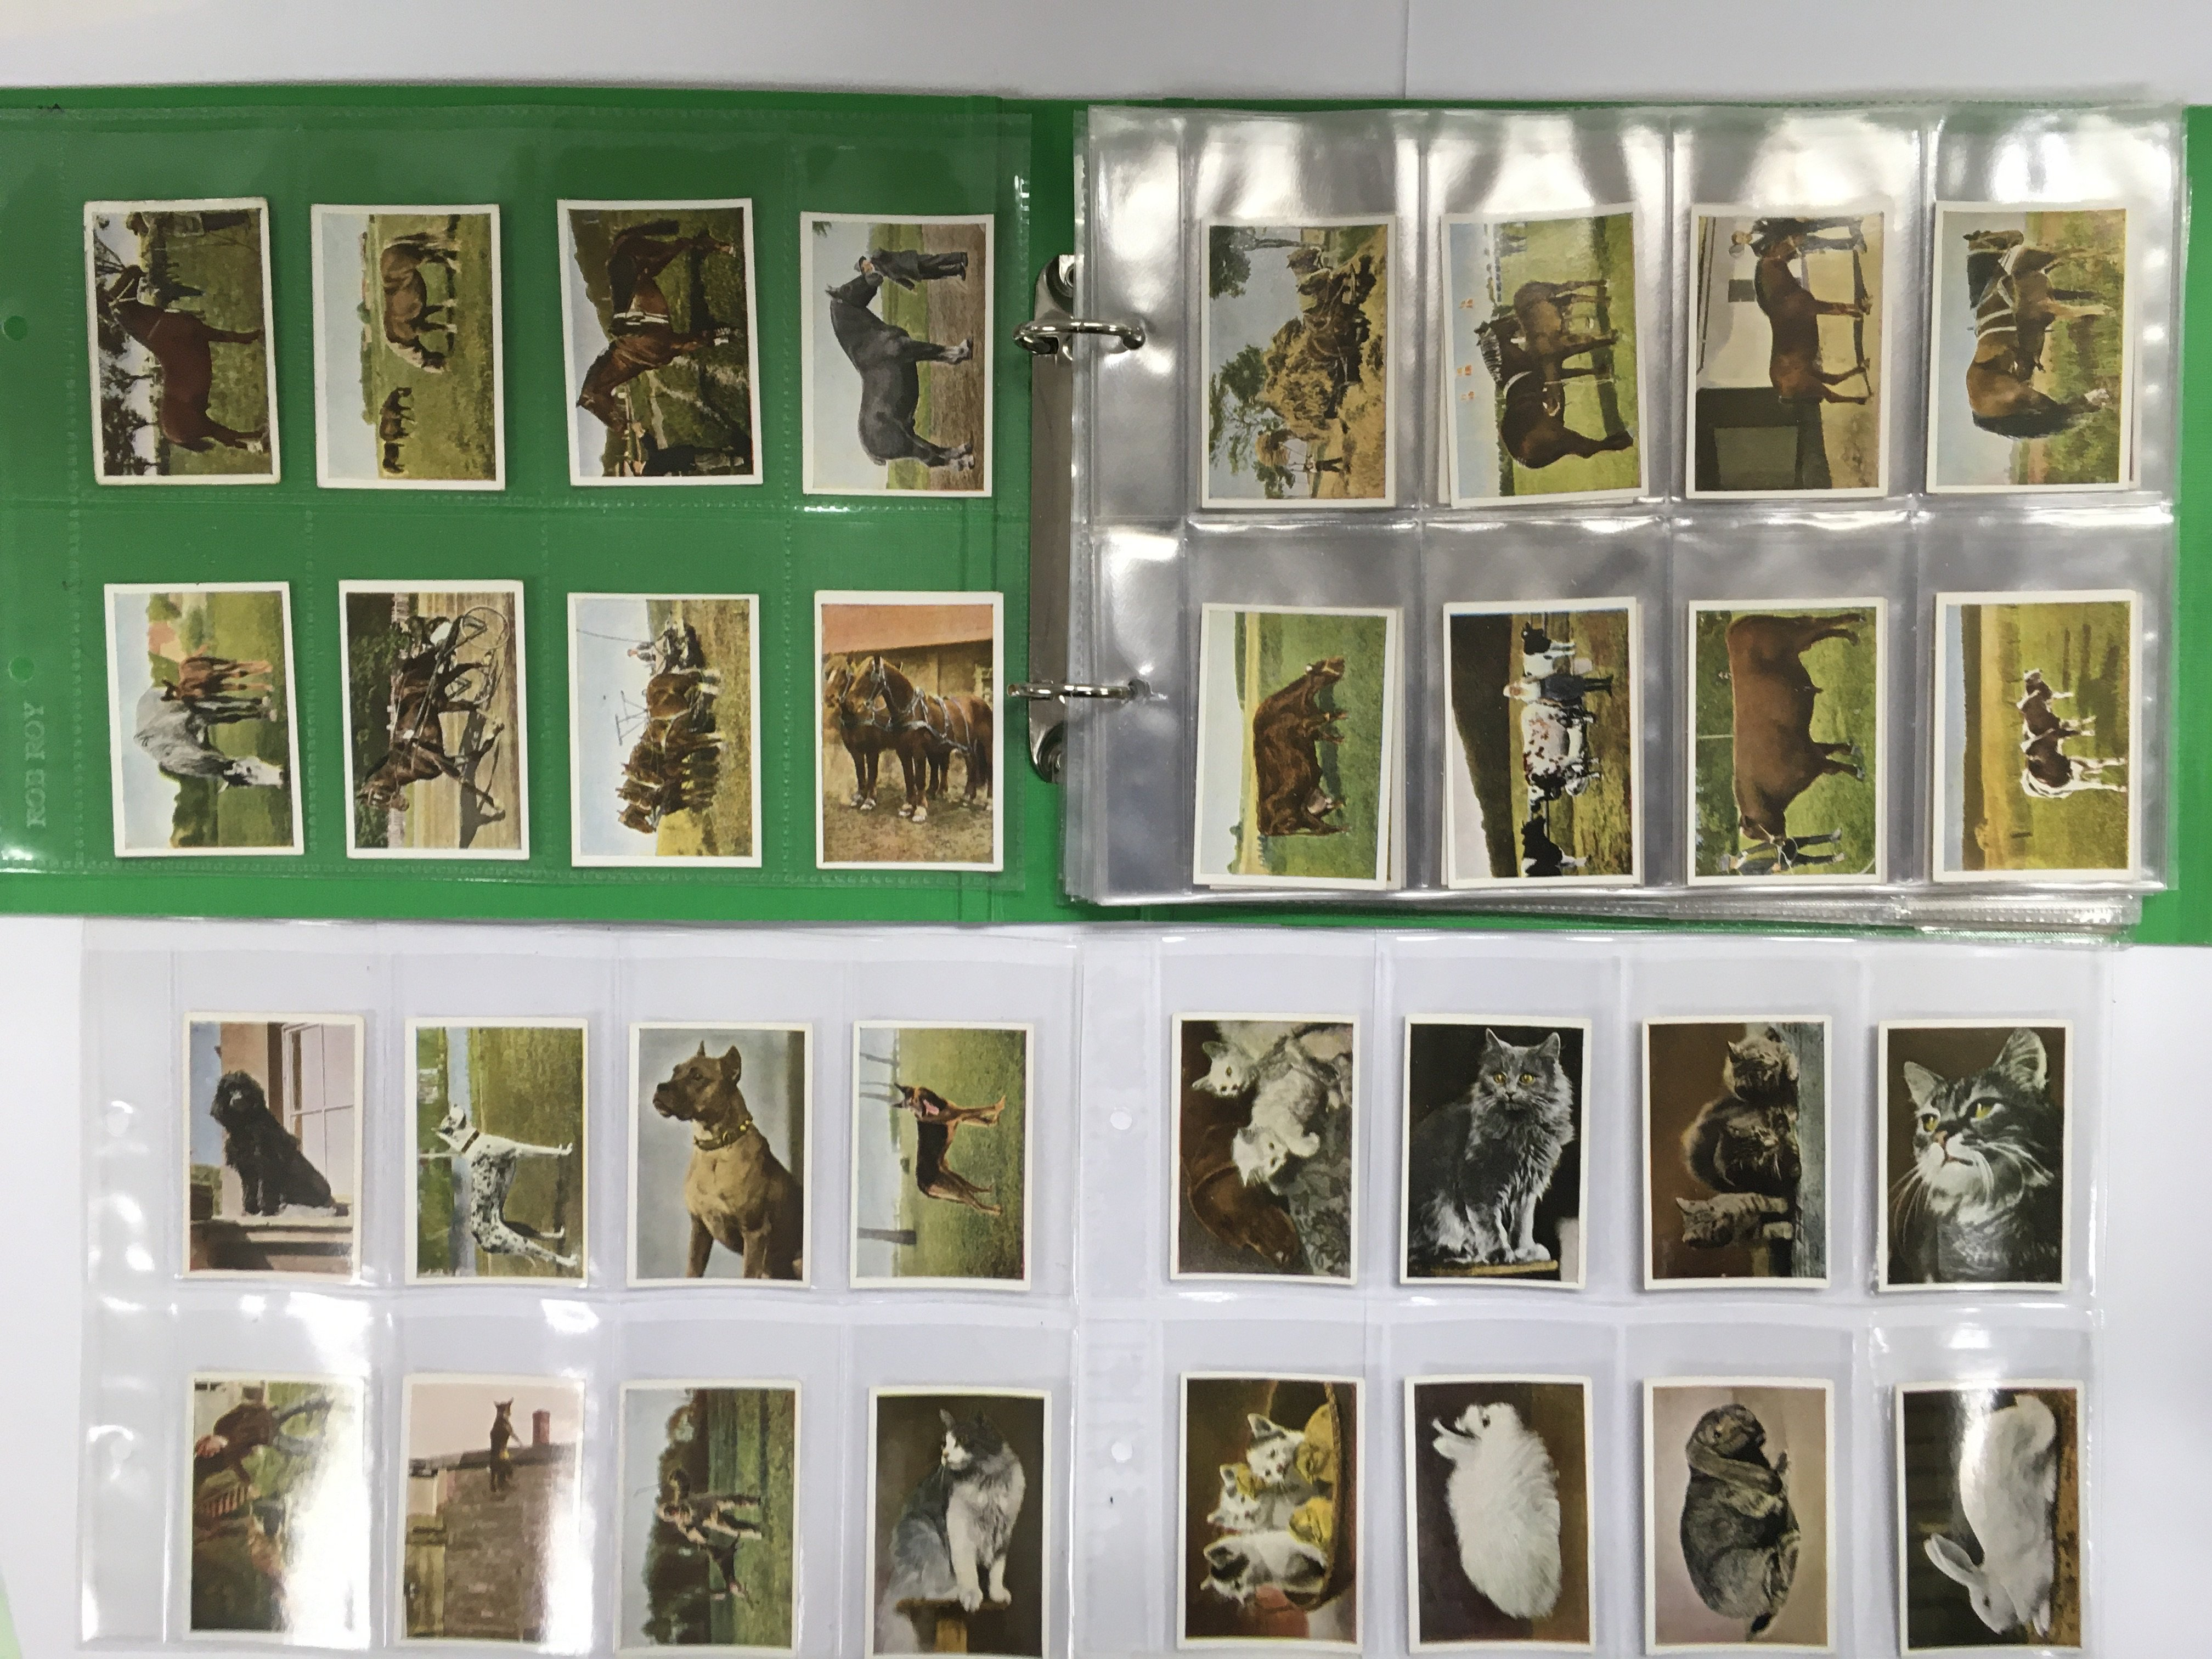 A complete set of 162 Rich & Serie cigarette cards